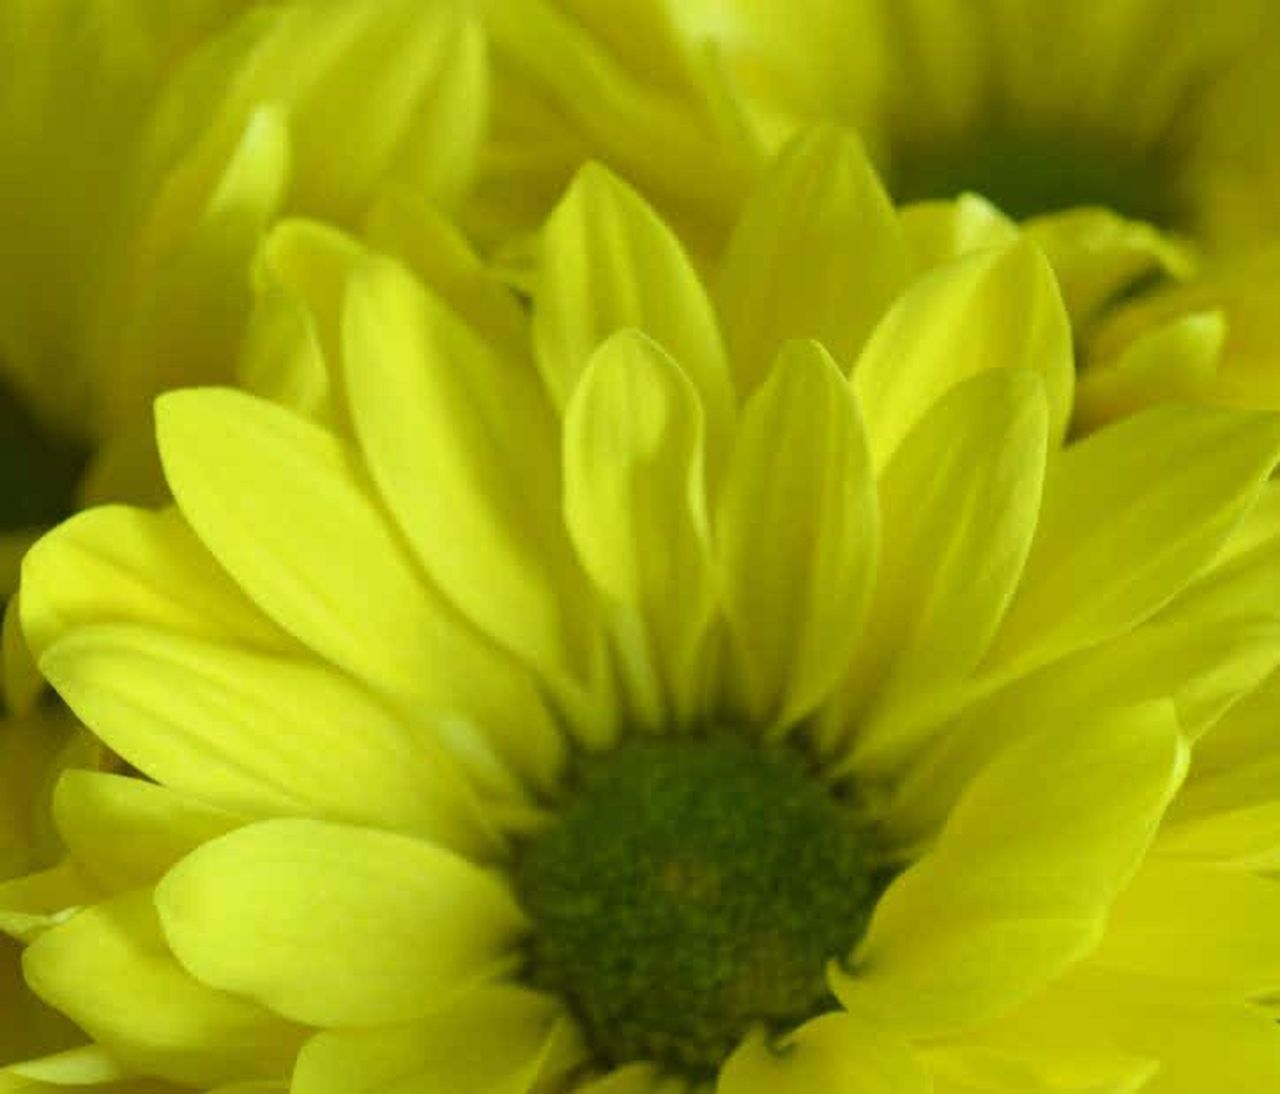 flower, plant, green color, nature, macro, freshness, fragility, close-up, yellow, petal, flower head, beauty in nature, growth, leaf, backgrounds, no people, day, beauty, herbal medicine, outdoors